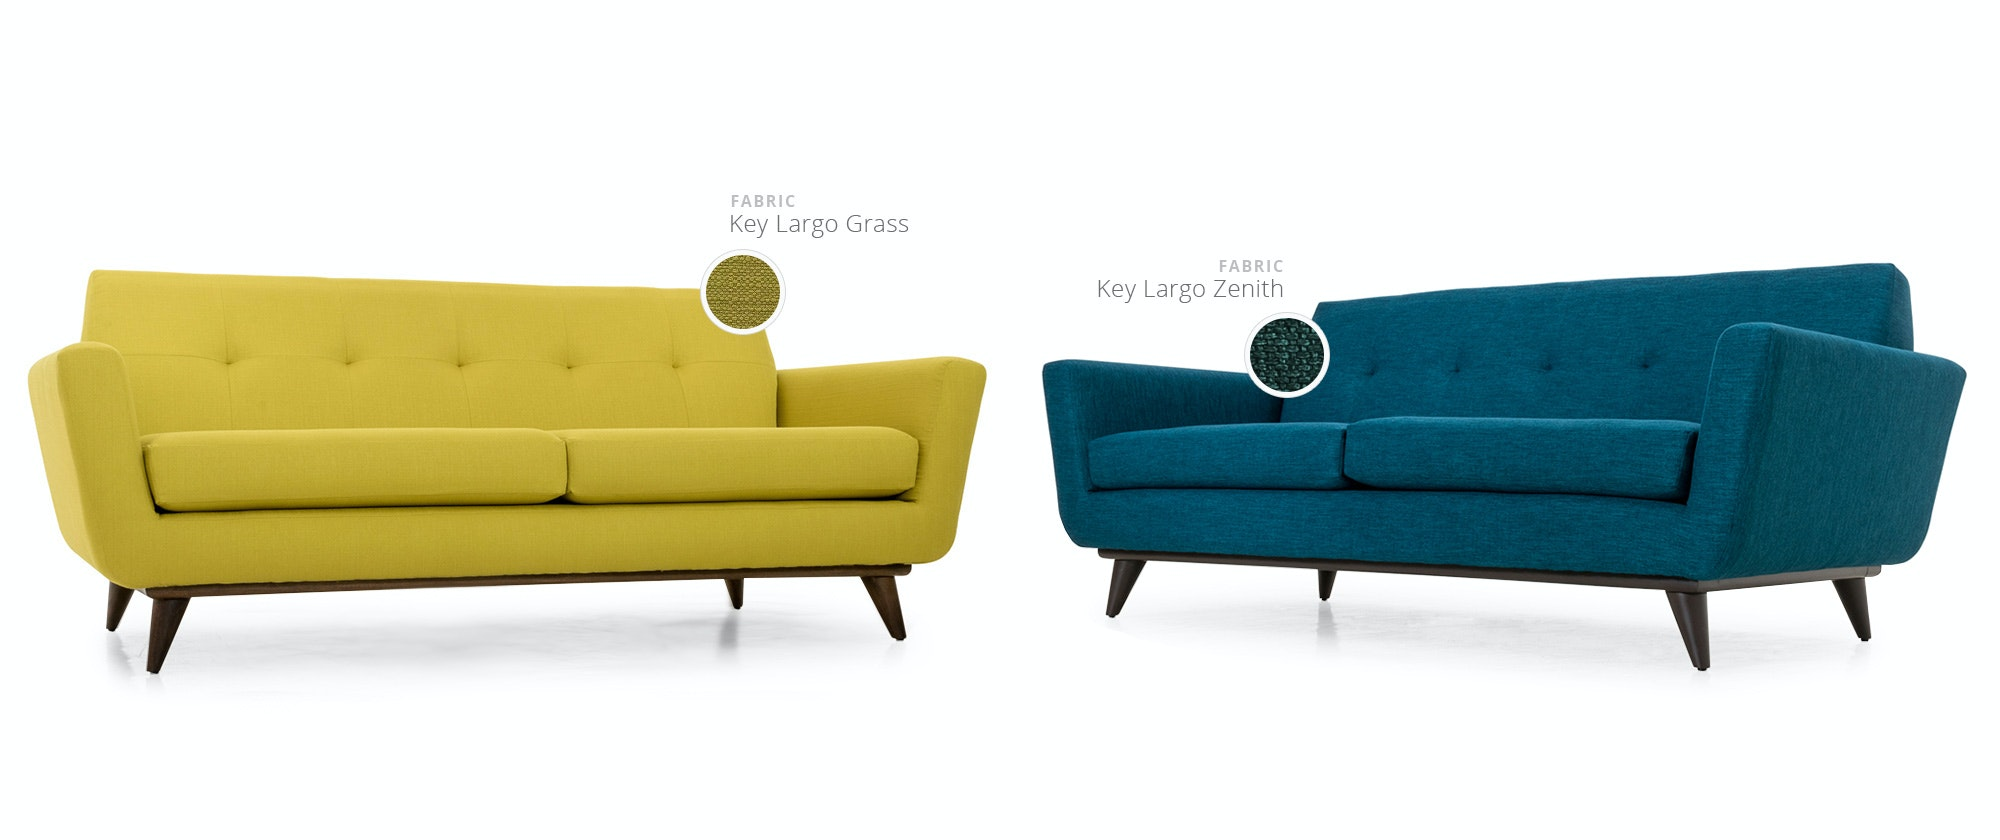 petite le leatherle concept leorbusier pierre jeanneretharlotte formidable and loveseat cassina charlotte size corbusier teal picture by jeanneret sofa of full setle